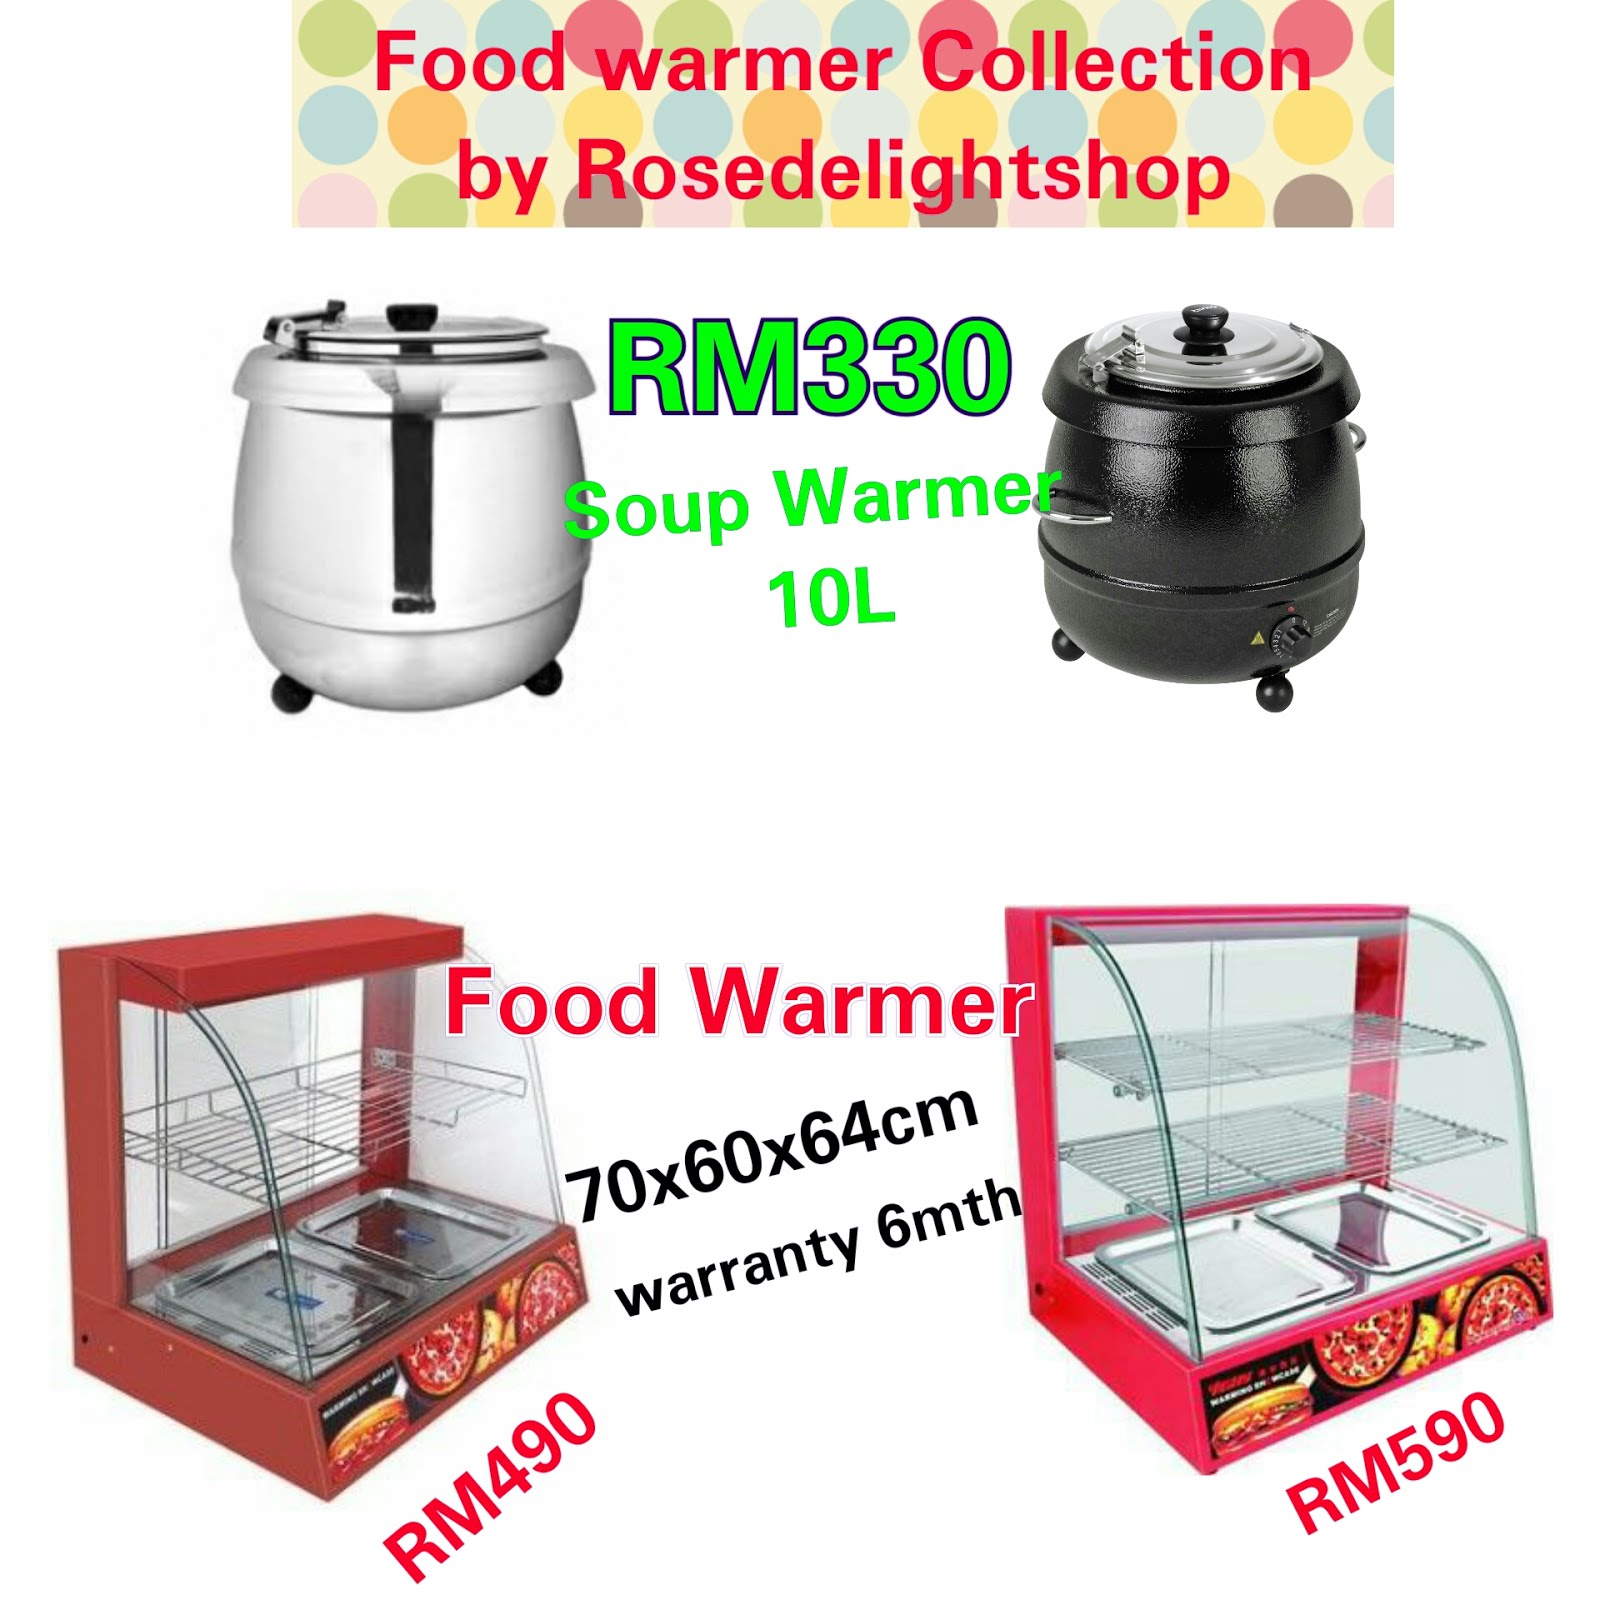 Kateloq Food Warmer